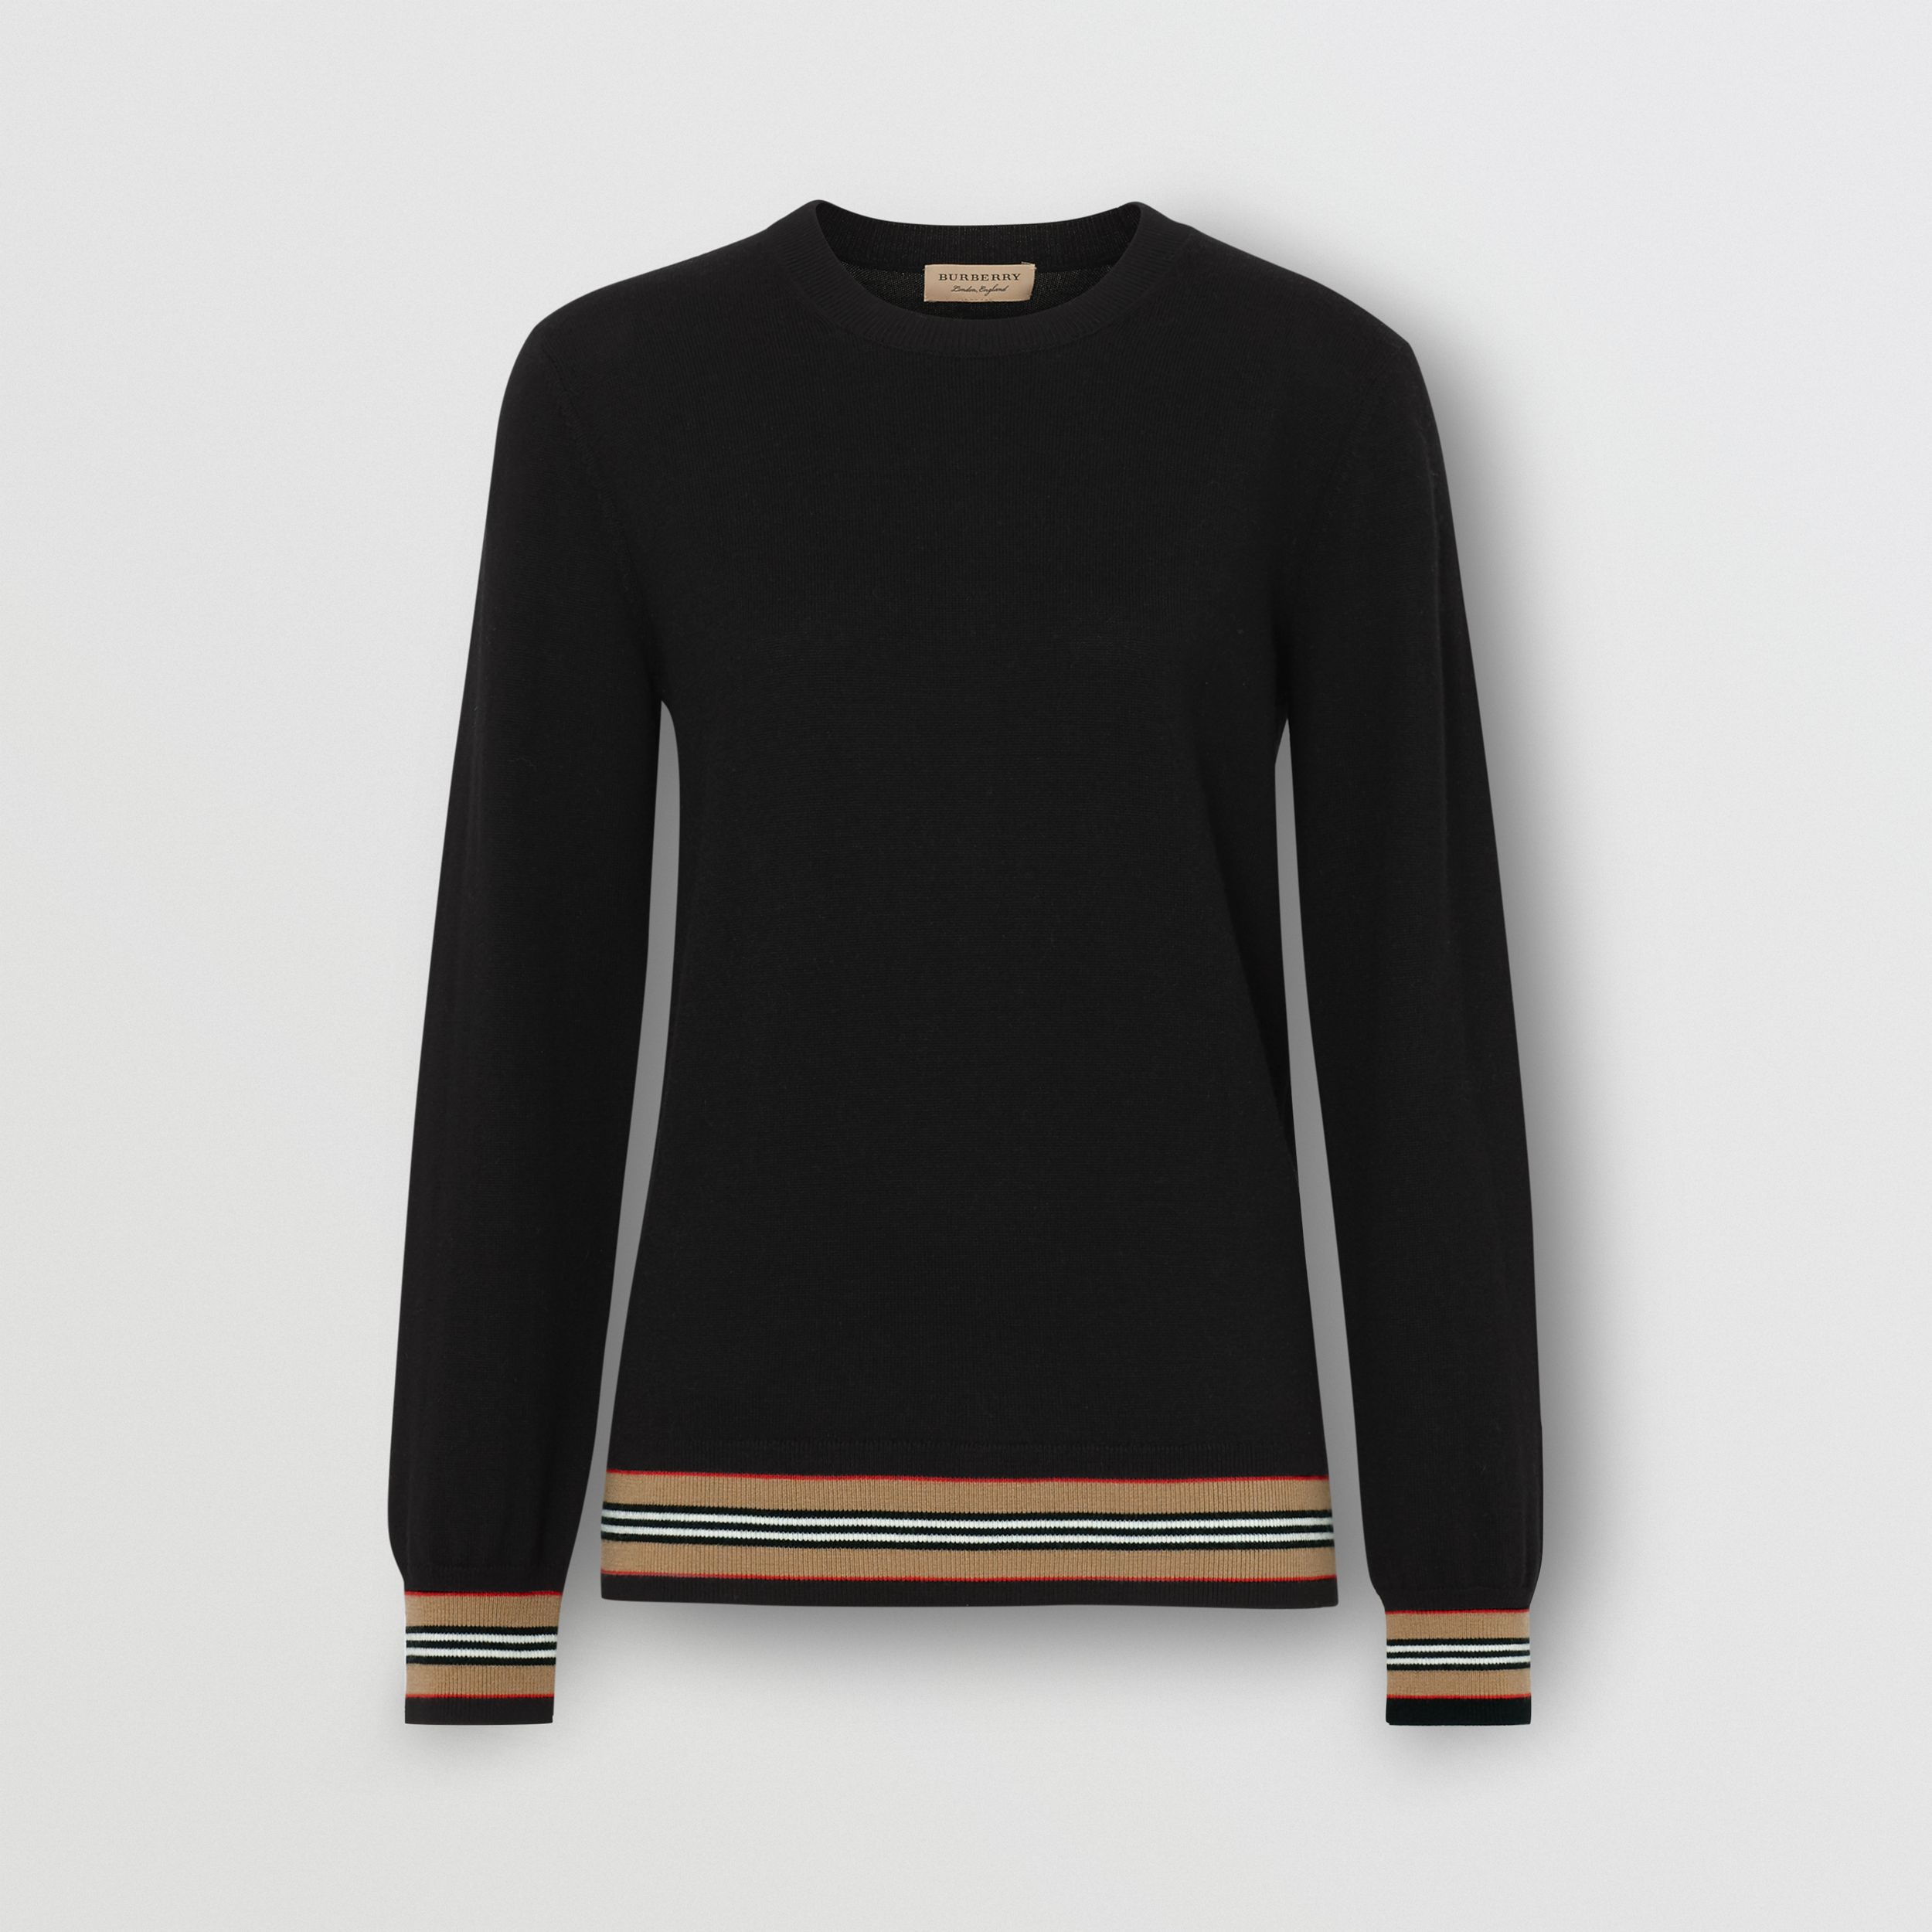 Icon Stripe Detail Merino Wool Sweater in Black - Women | Burberry - 4